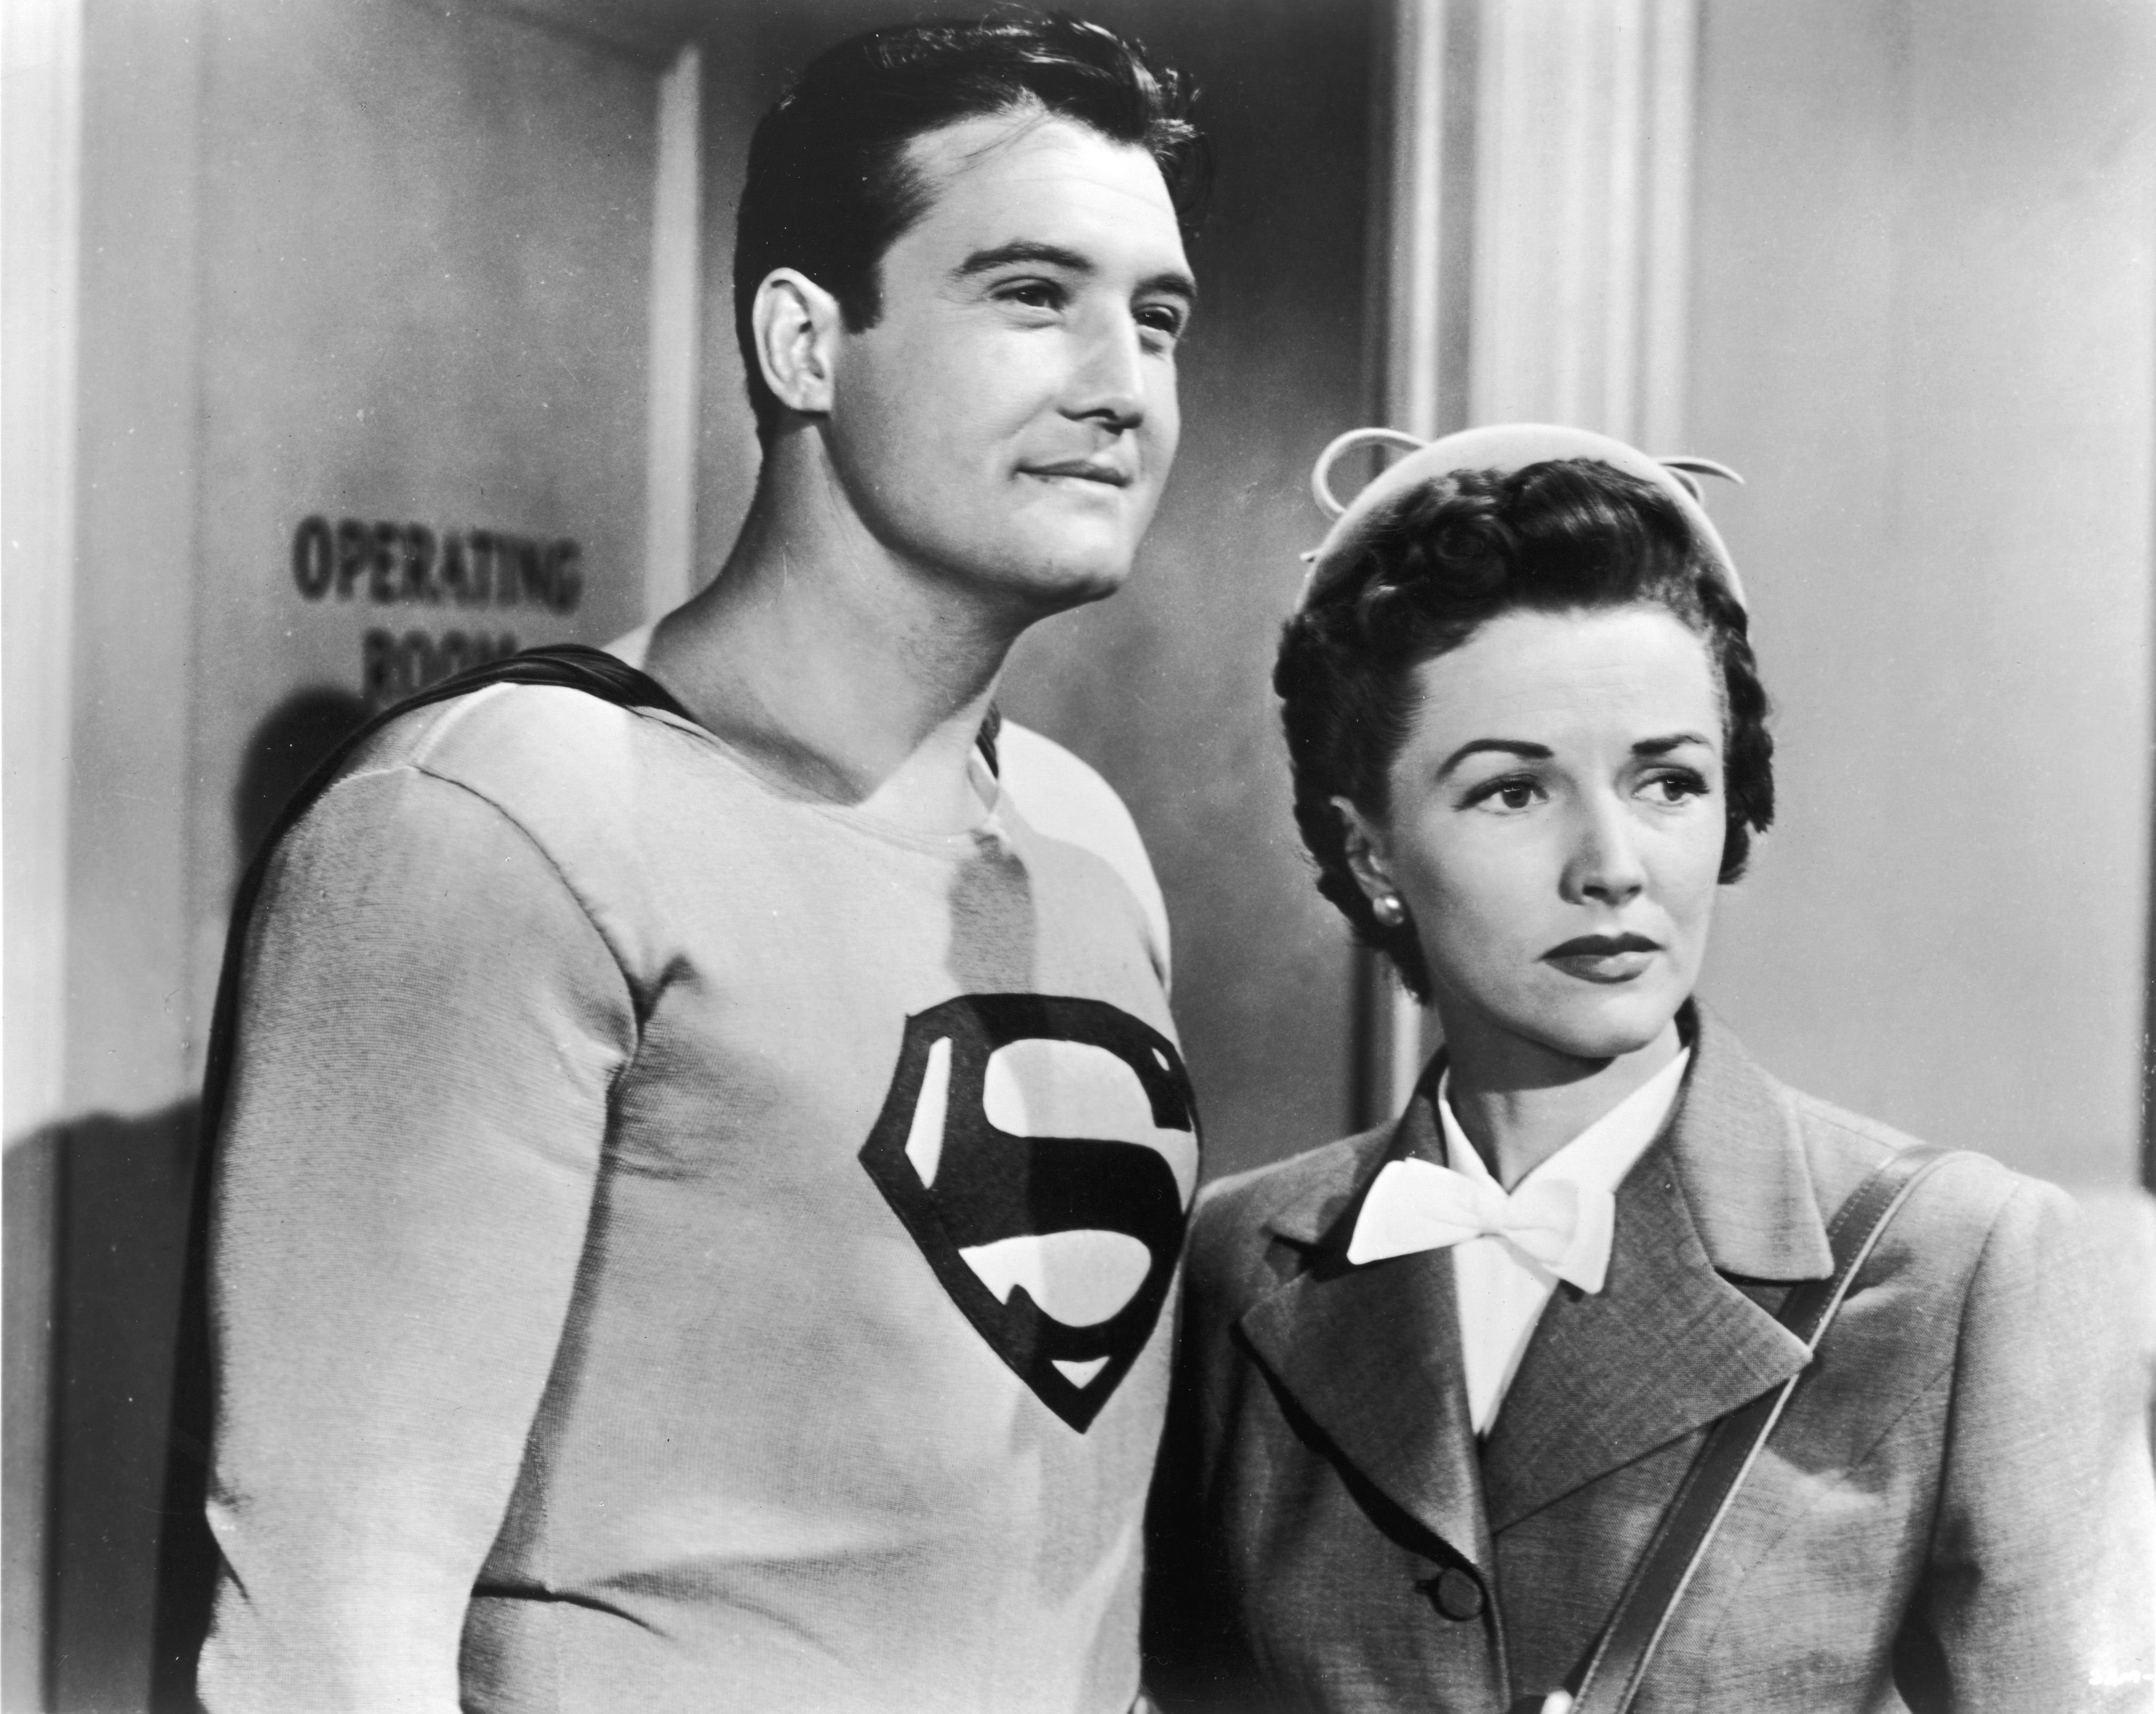 """George Reeves, as Superman, with Phyllis Coates, as Lois Lane, in a still from """"Adventures of Superman,"""" circa 1952 